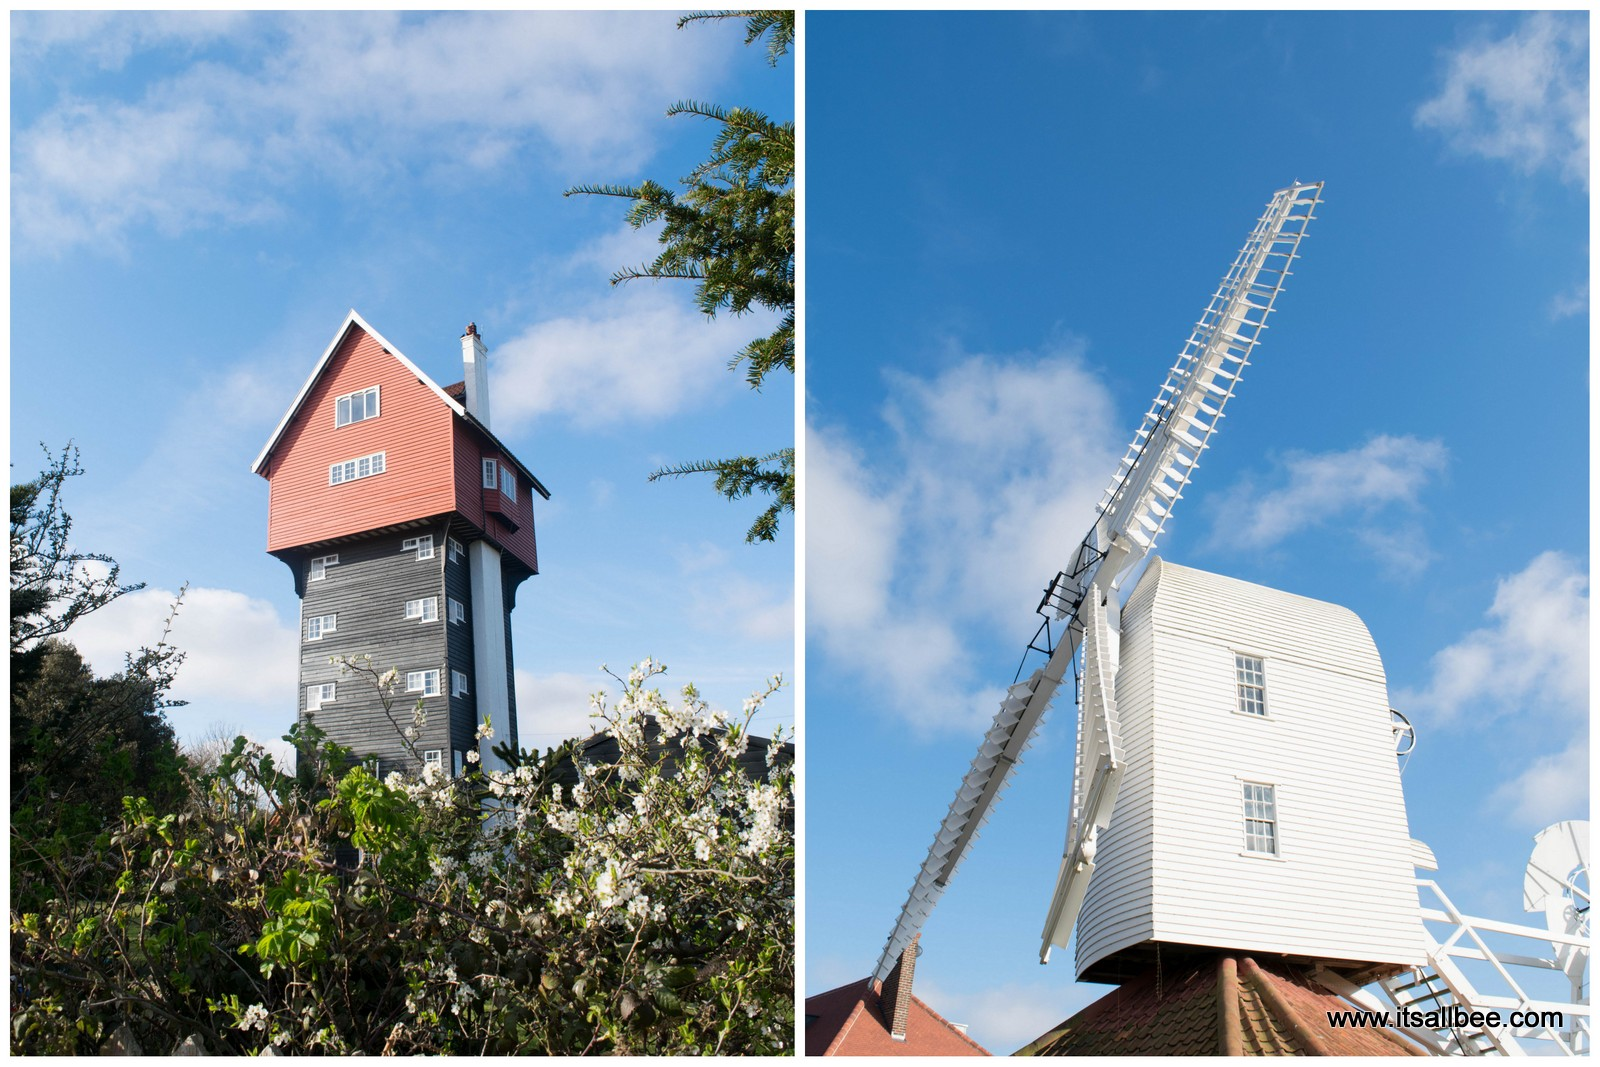 thorpeness house in the clouds | thorpeness windmill